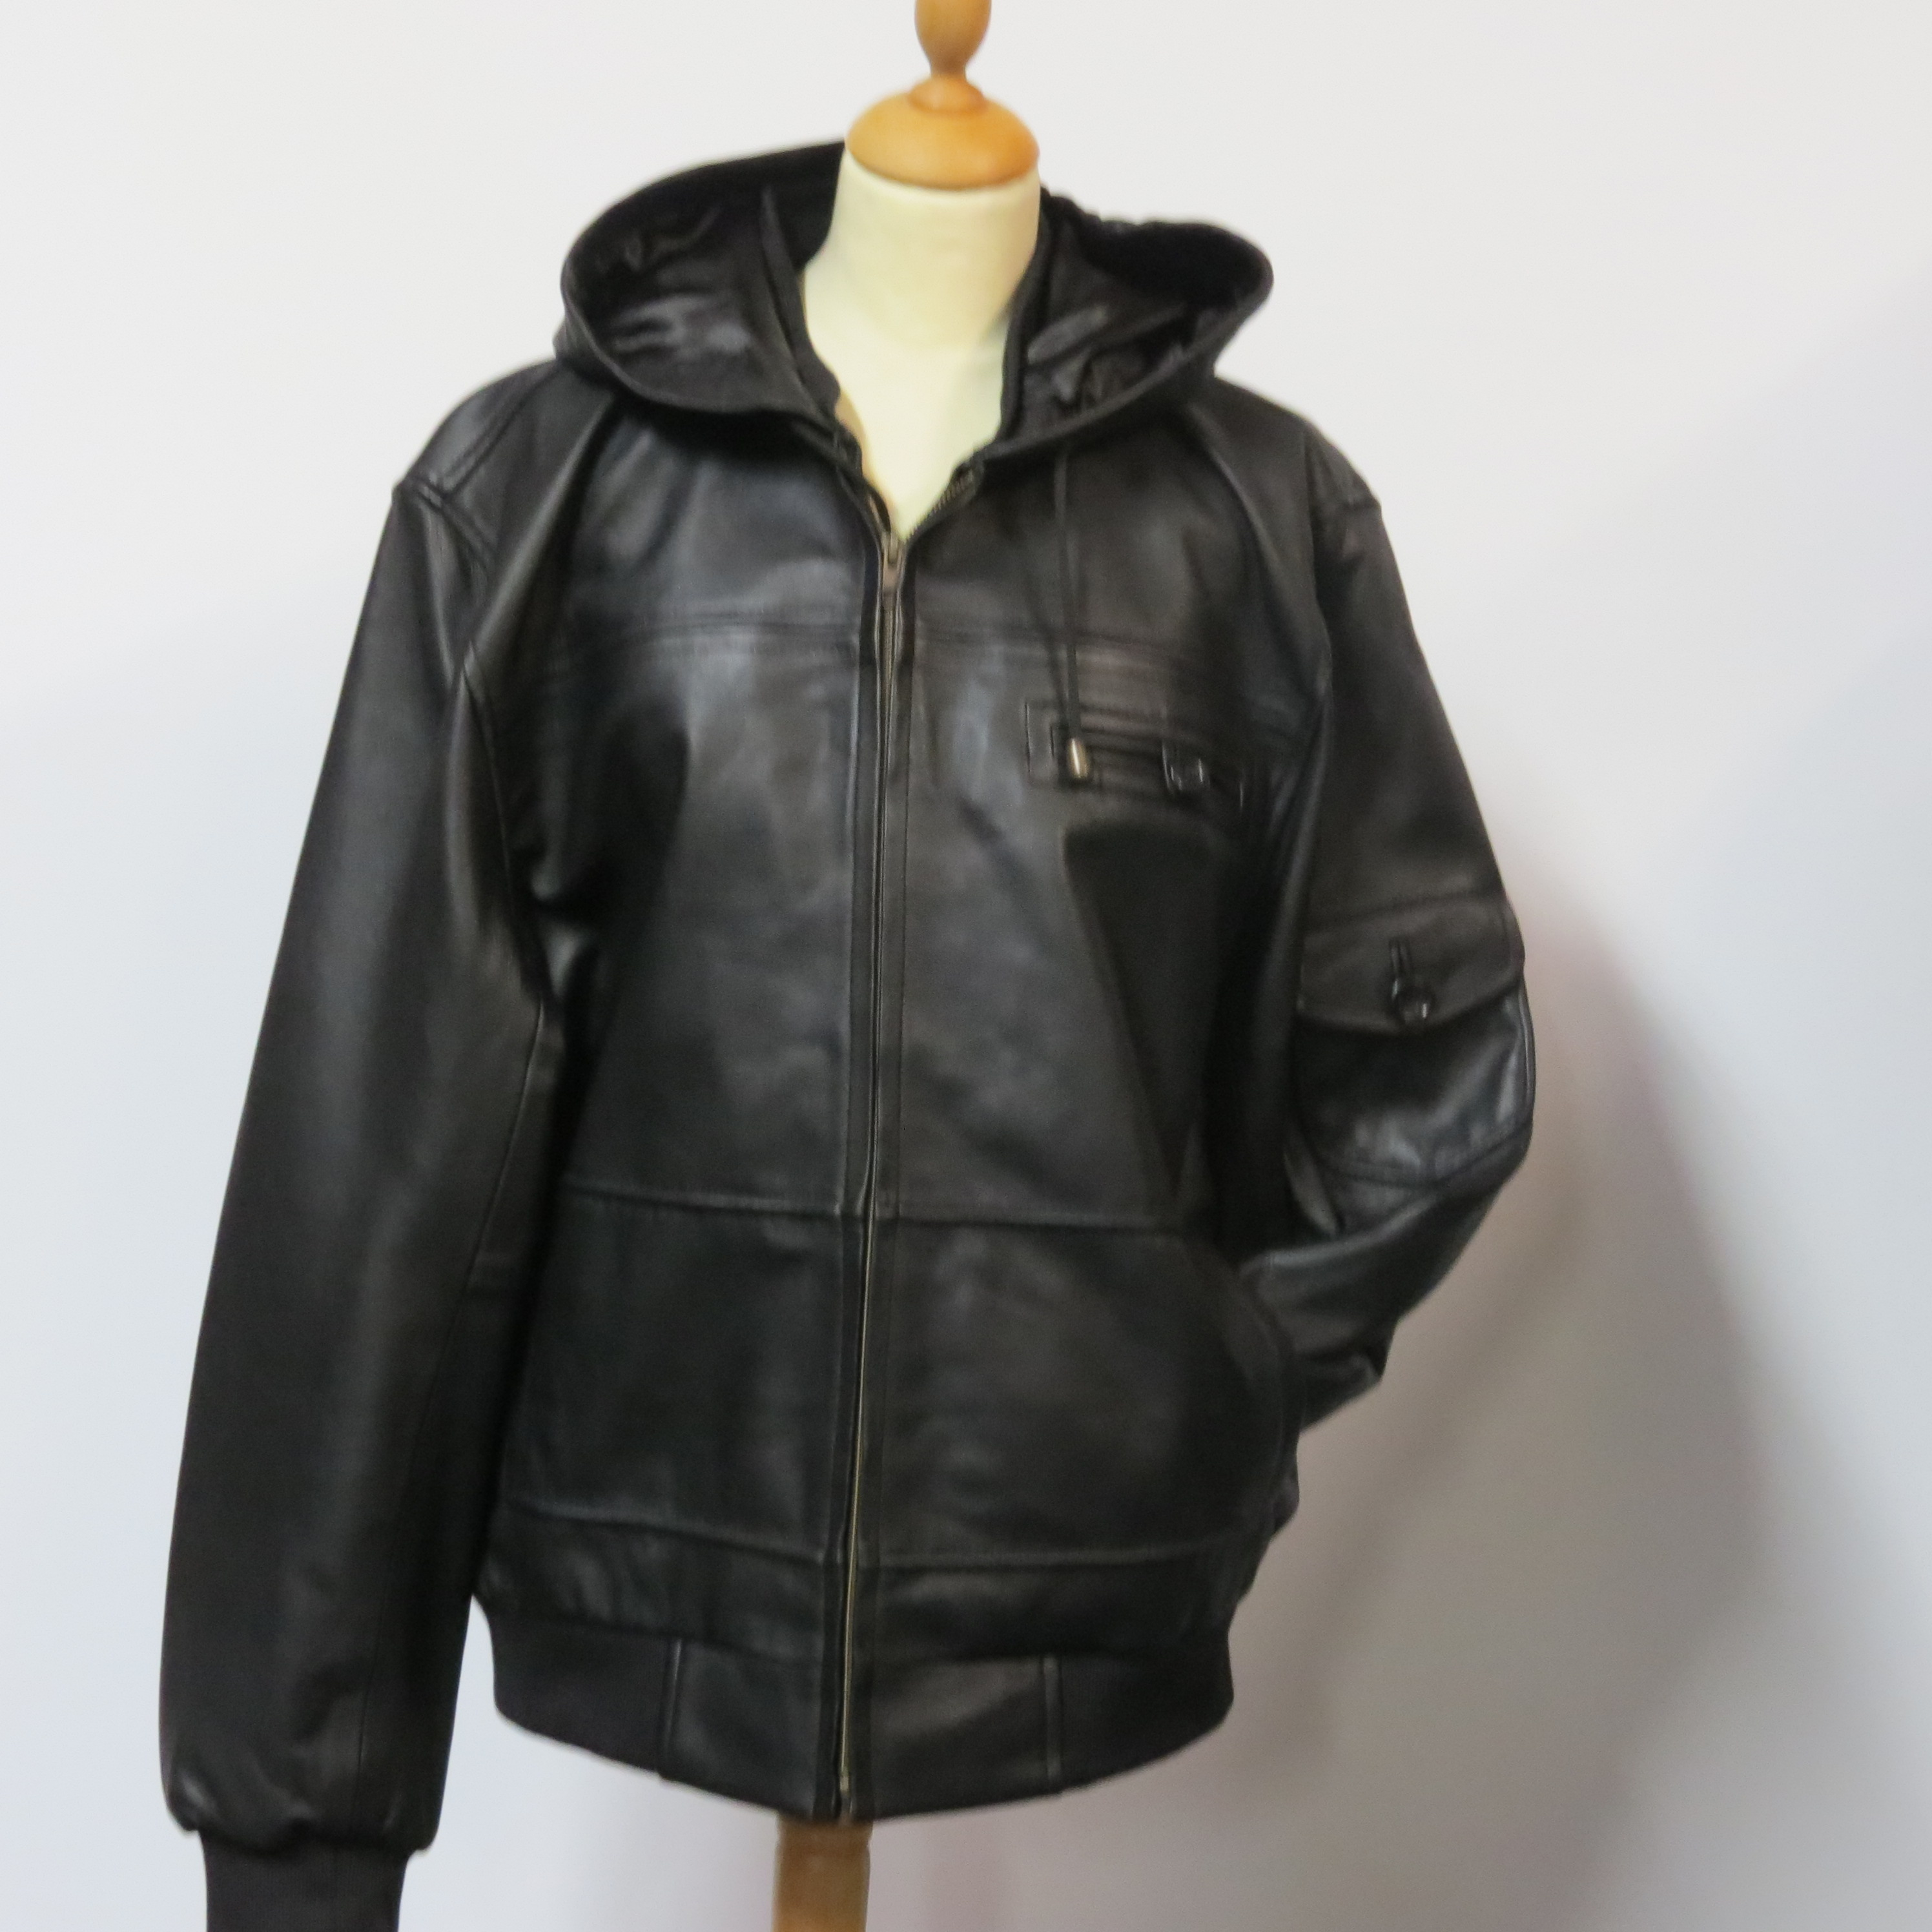 Kids hooded jacket nappa leather